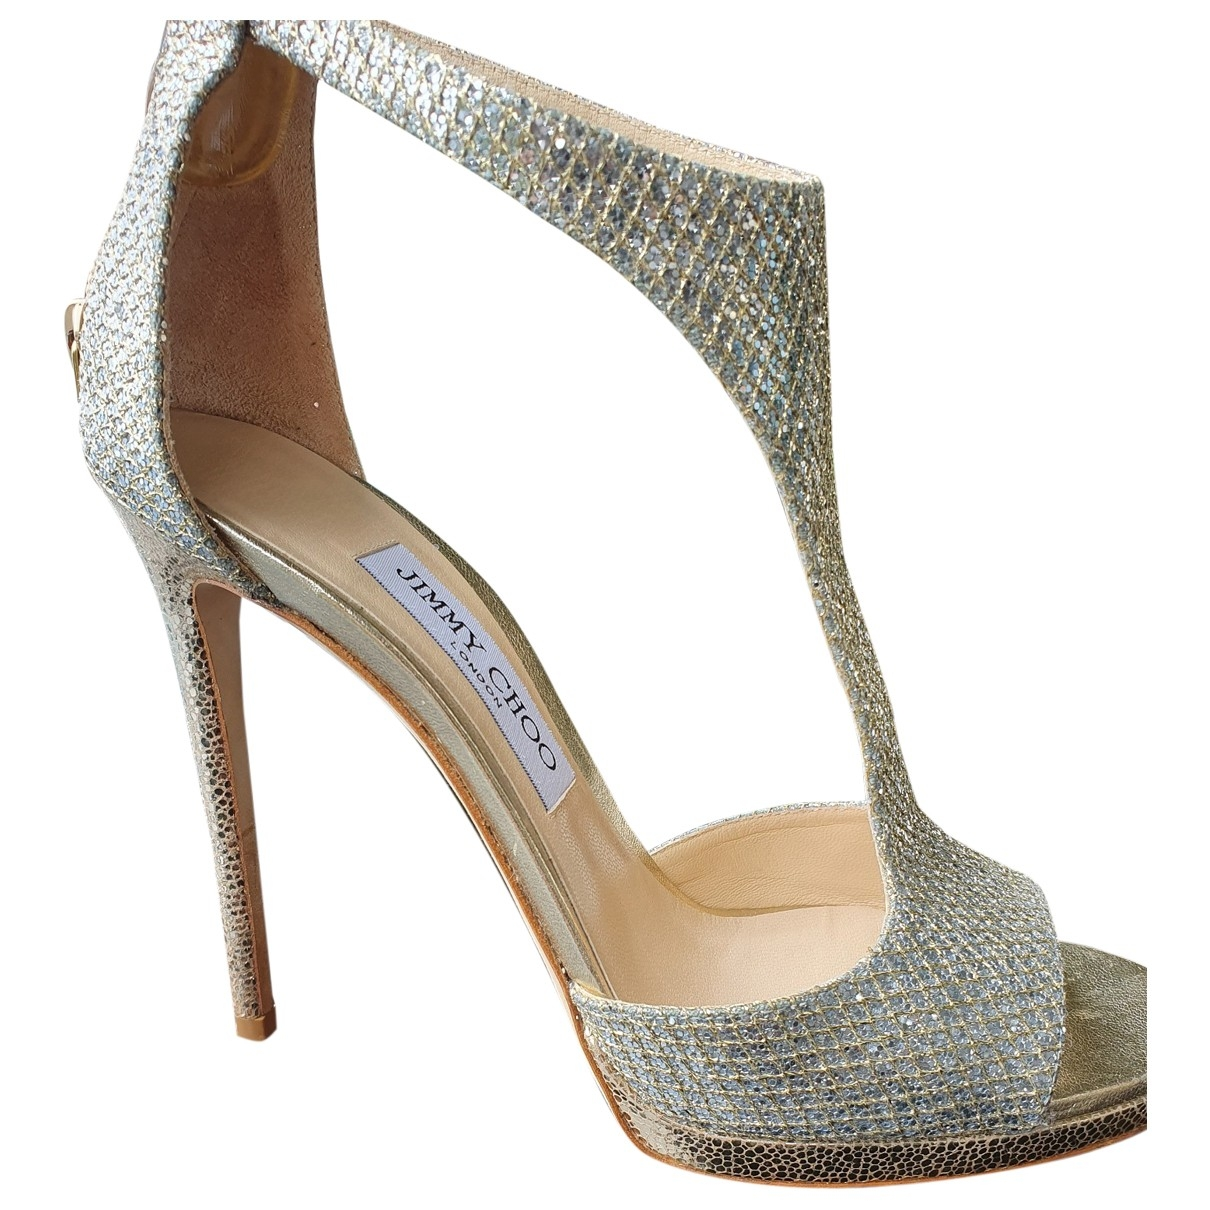 Jimmy Choo \N Silver Glitter Sandals for Women 38.5 EU